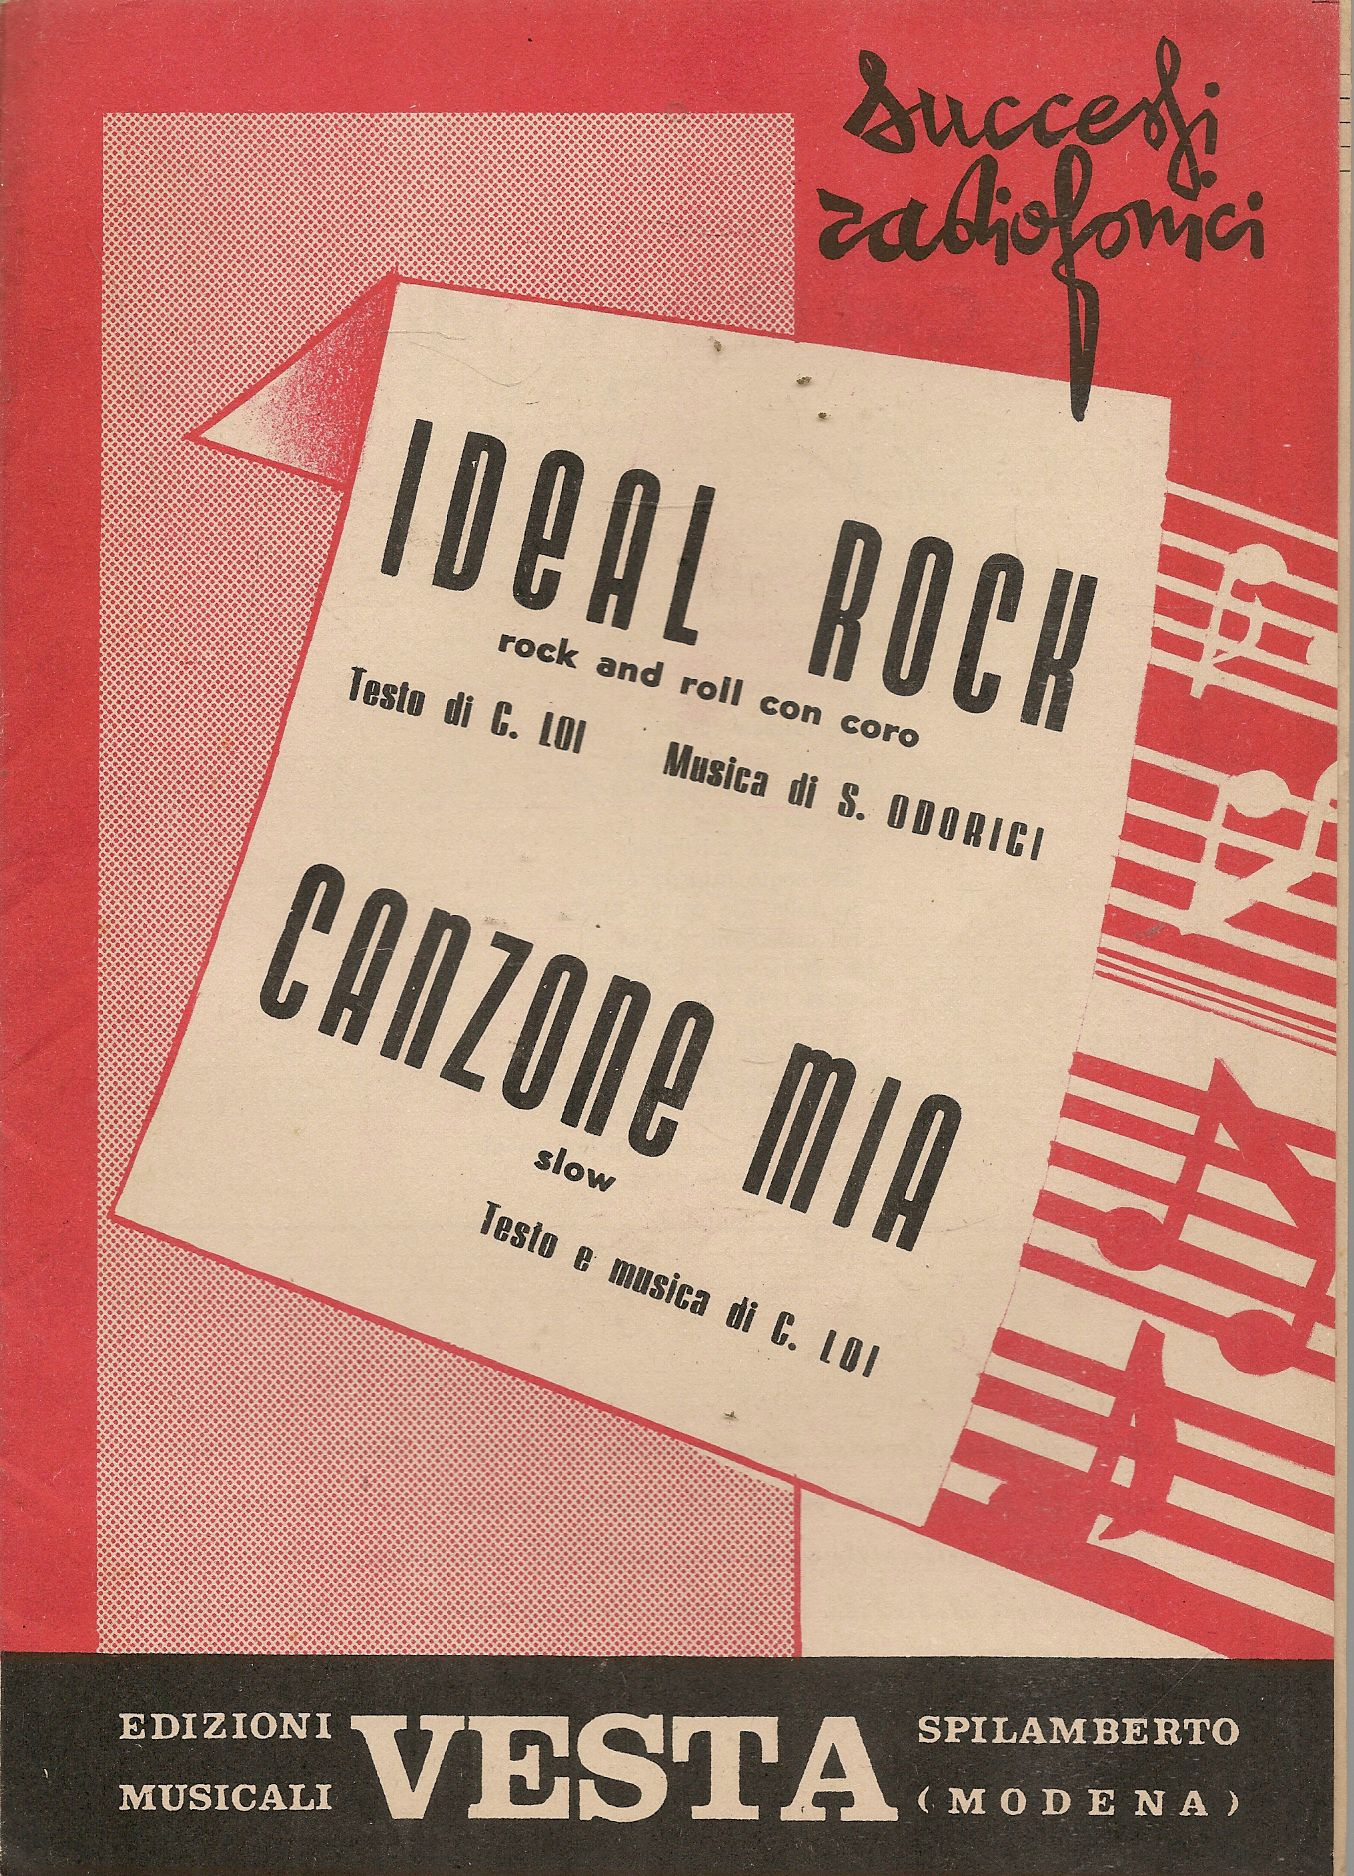 IDEAL ROCK - CAMZONE MIA - C.  LOI - SPARTITO - SHEET MUSIC